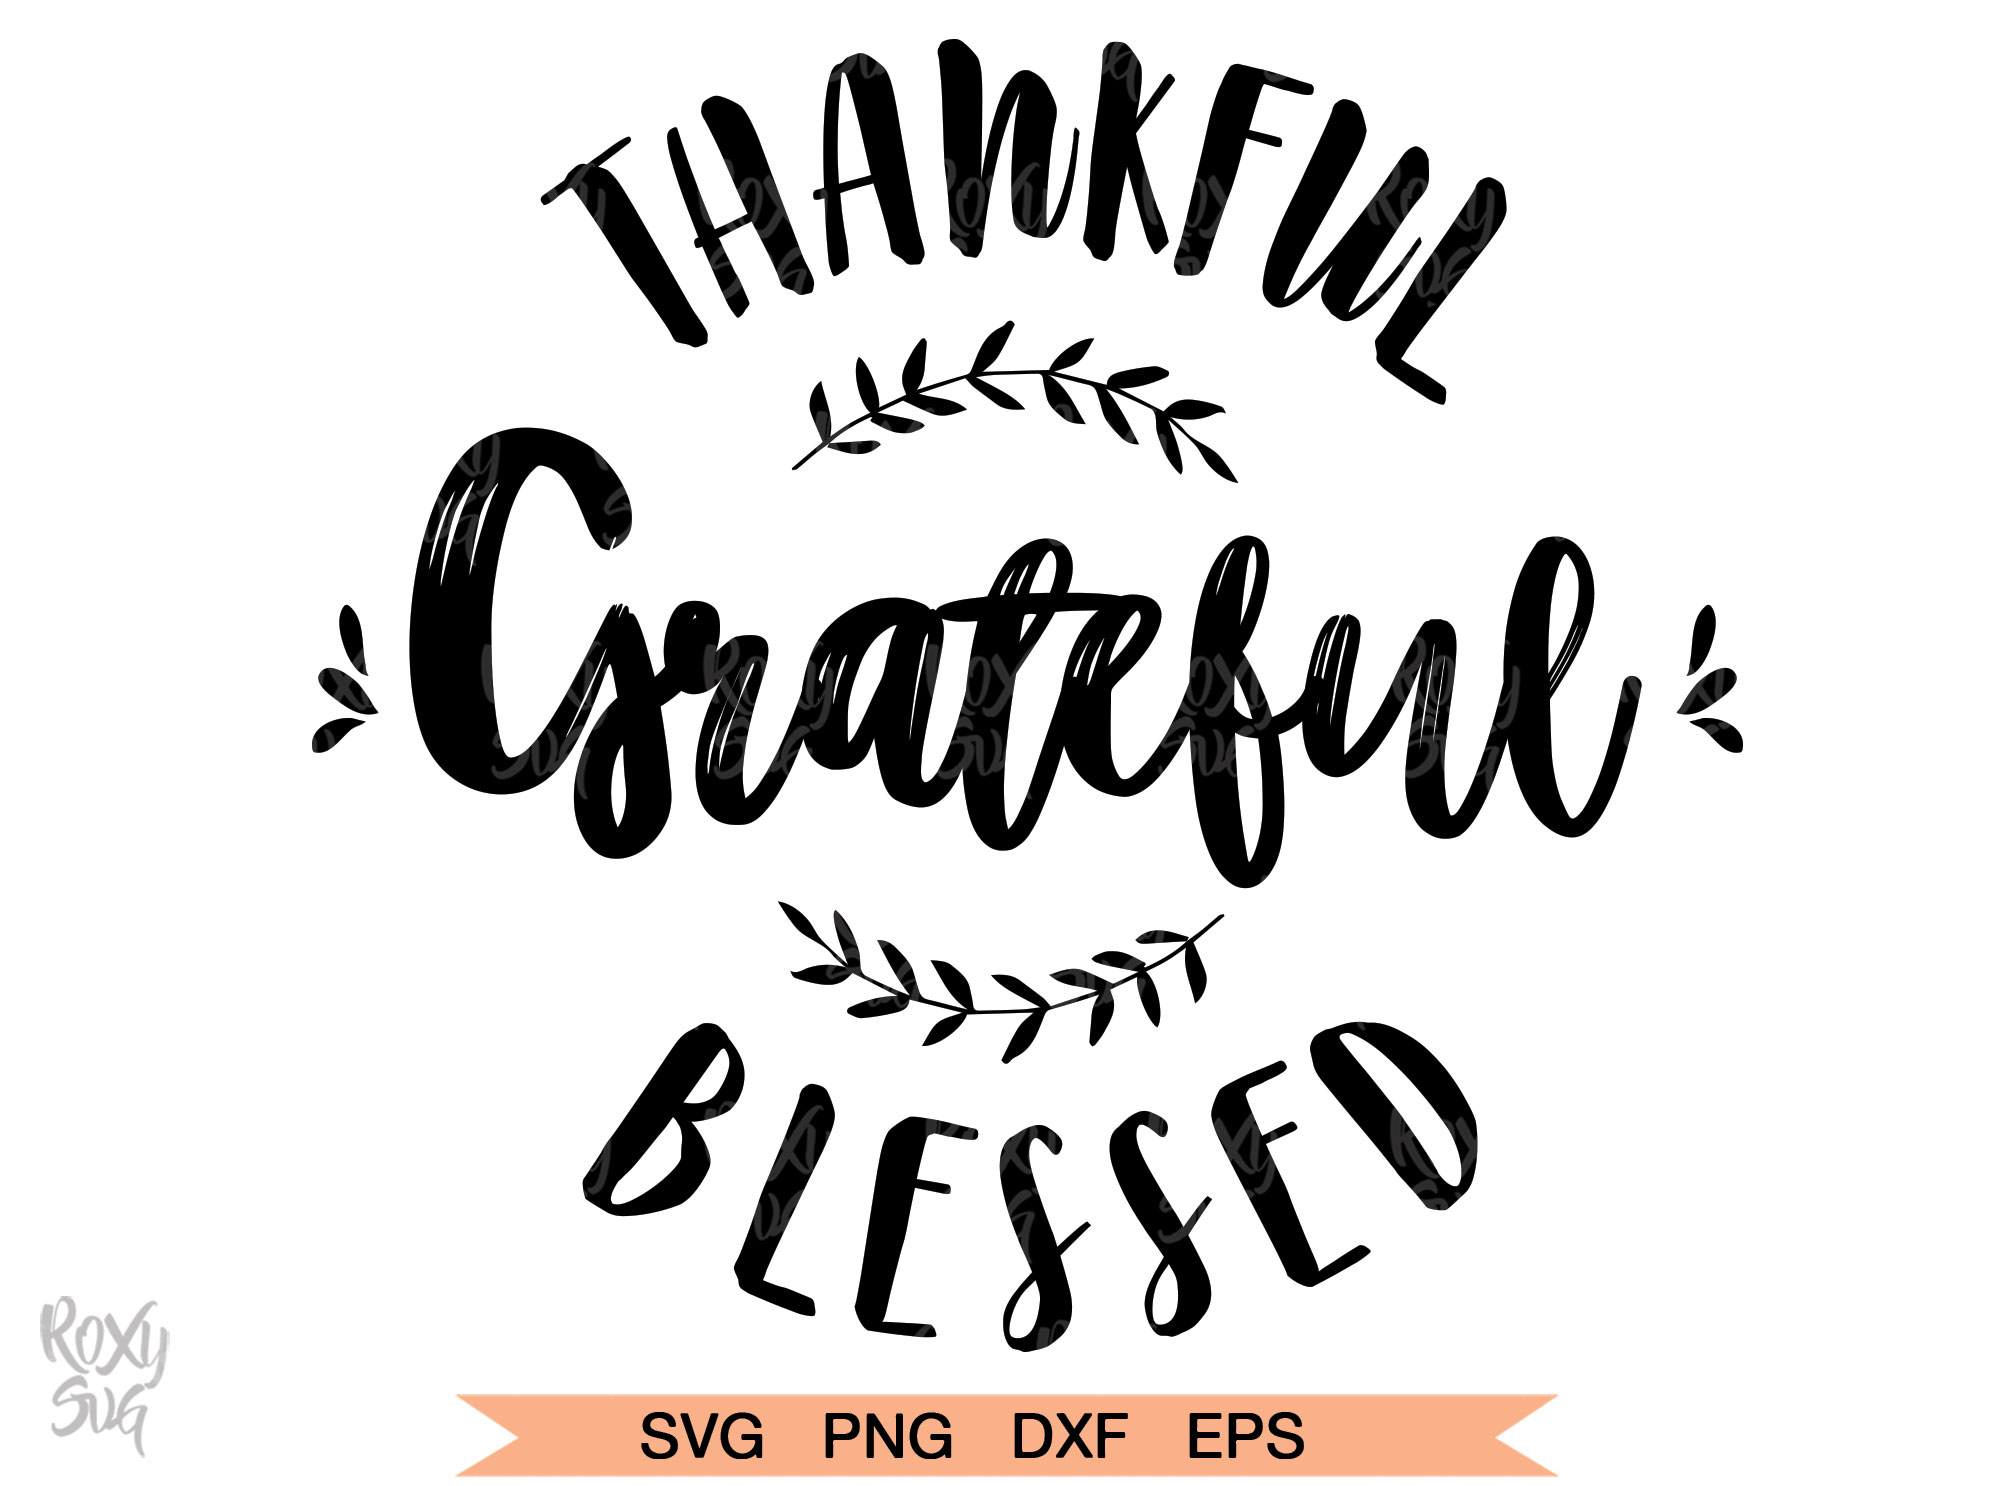 Download Free Thankful Grateful Blessed Graphic By Roxysvg26 Creative Fabrica for Cricut Explore, Silhouette and other cutting machines.